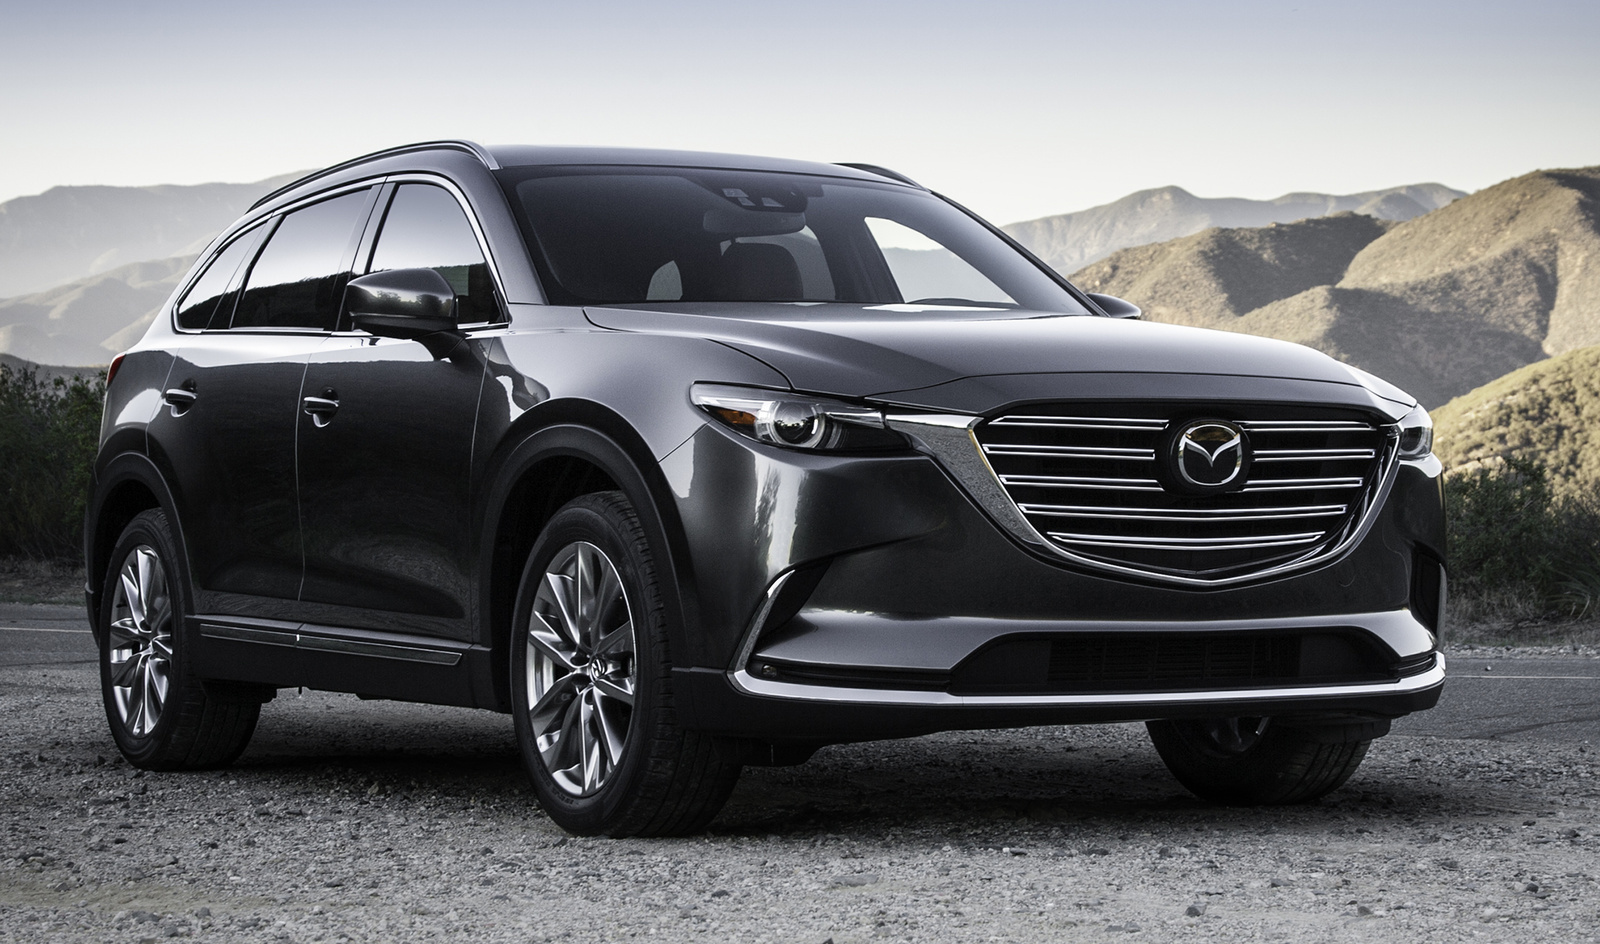 2016 mazda cx 9 review cargurus. Black Bedroom Furniture Sets. Home Design Ideas